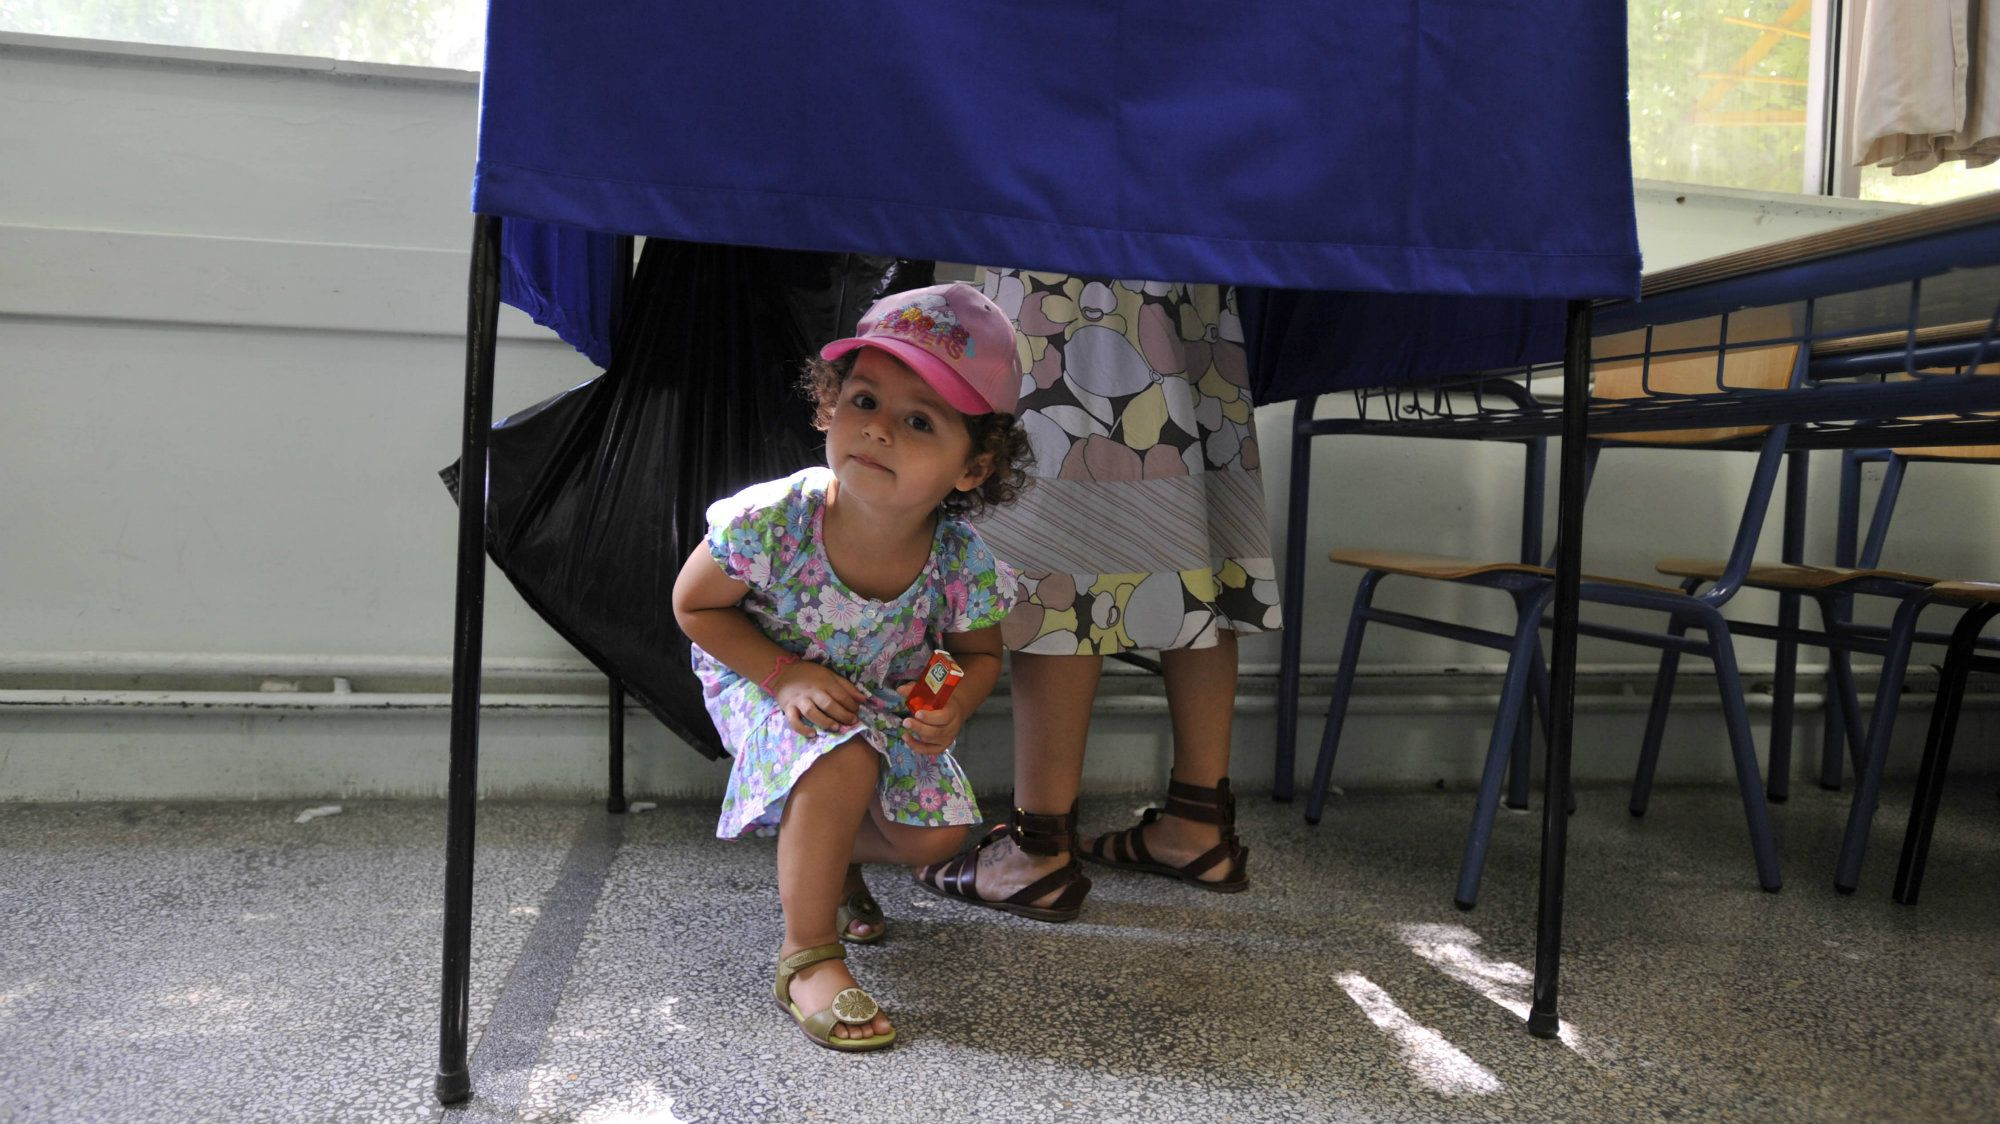 A child looks on from a polling booth as her mother prepares to vote at a polling station during the elections in Thessaloniki, Sunday, June 17, 2012.